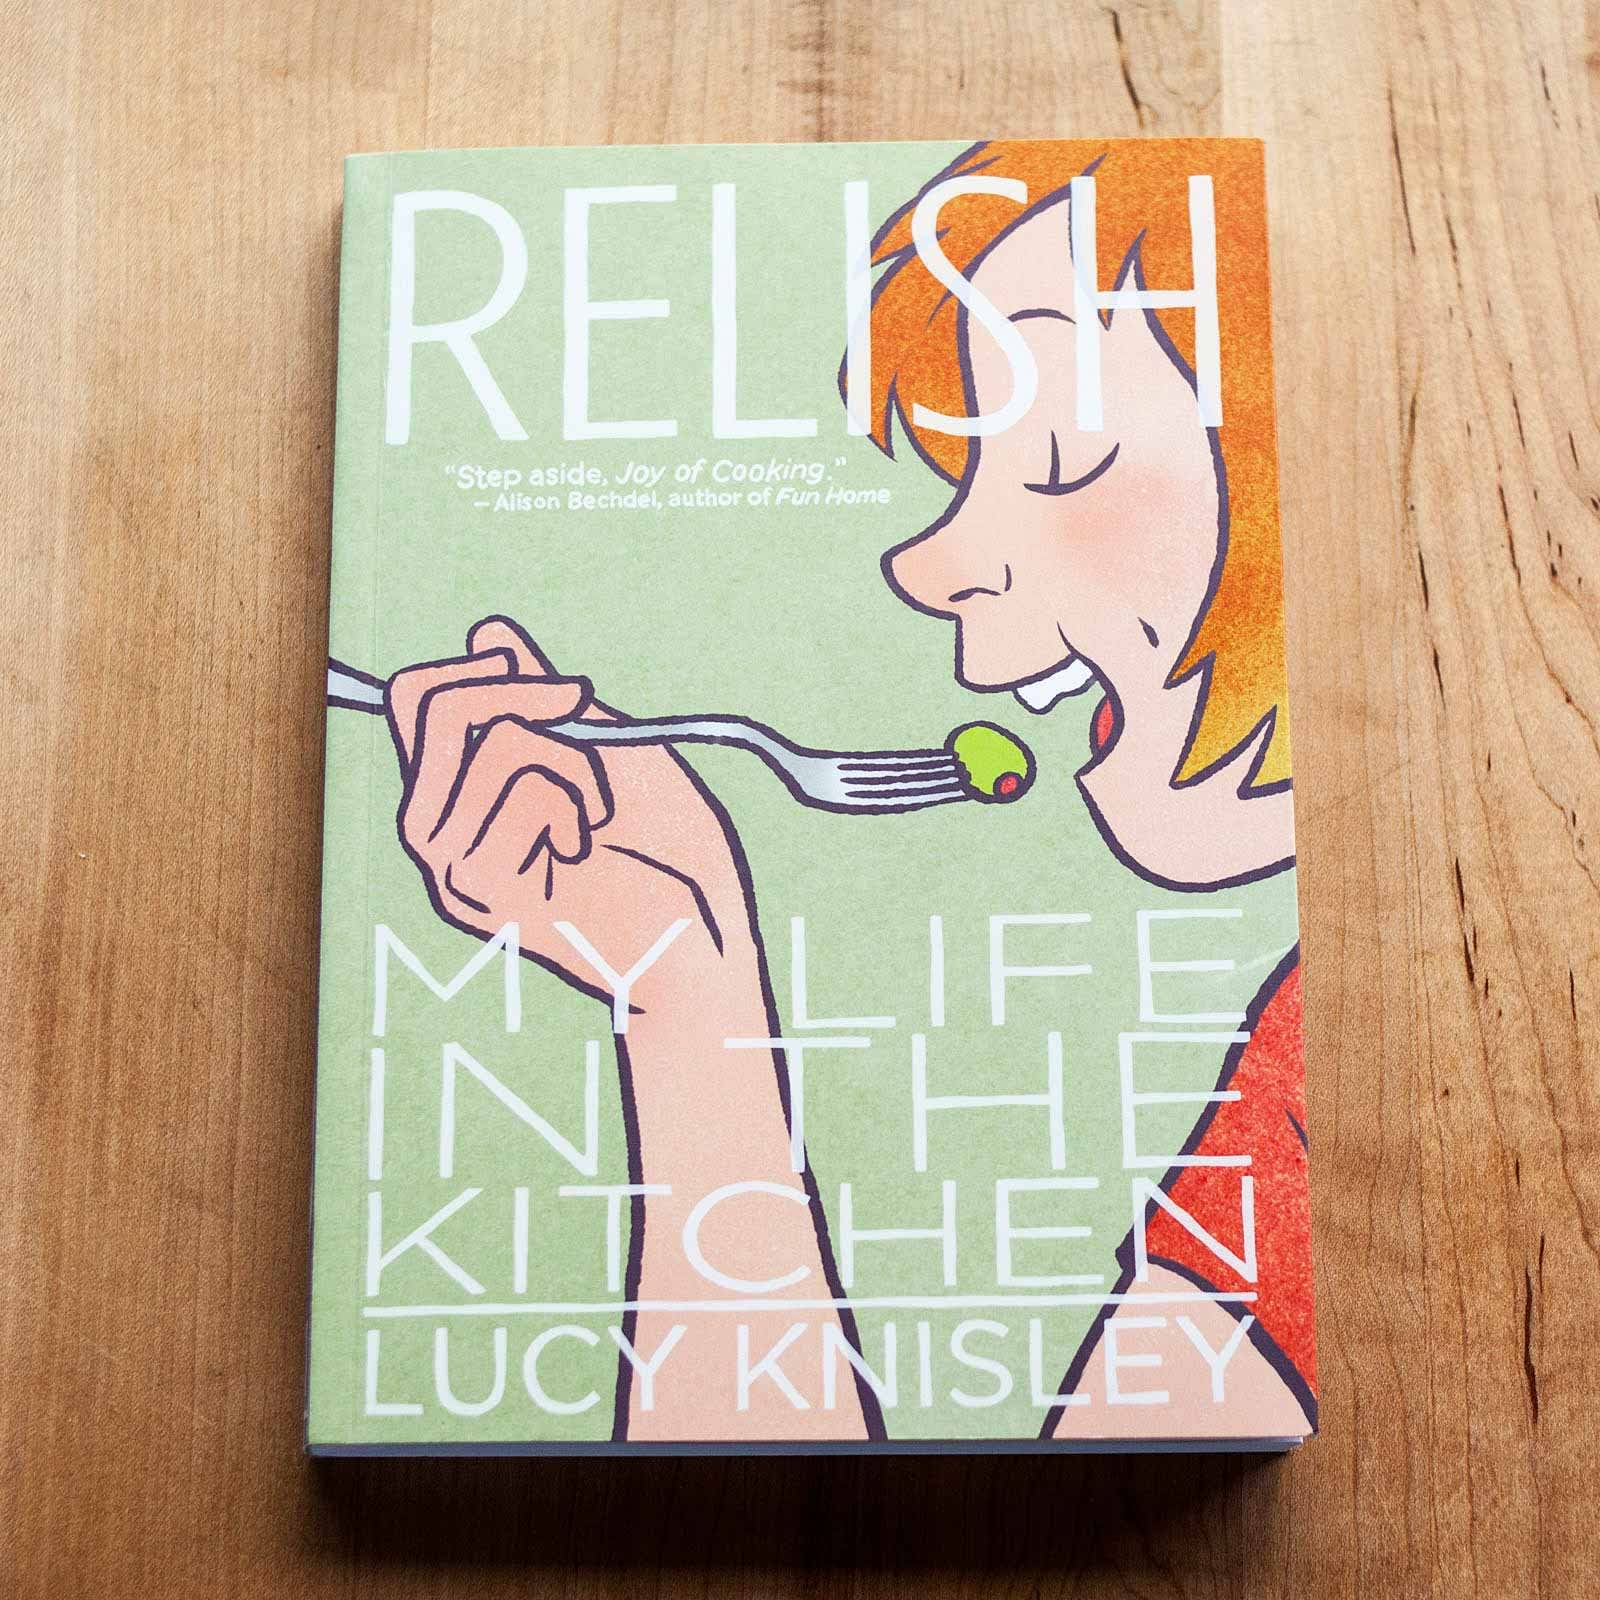 Relish My Life In The Kitchen By Lucy Knisley Kitchn